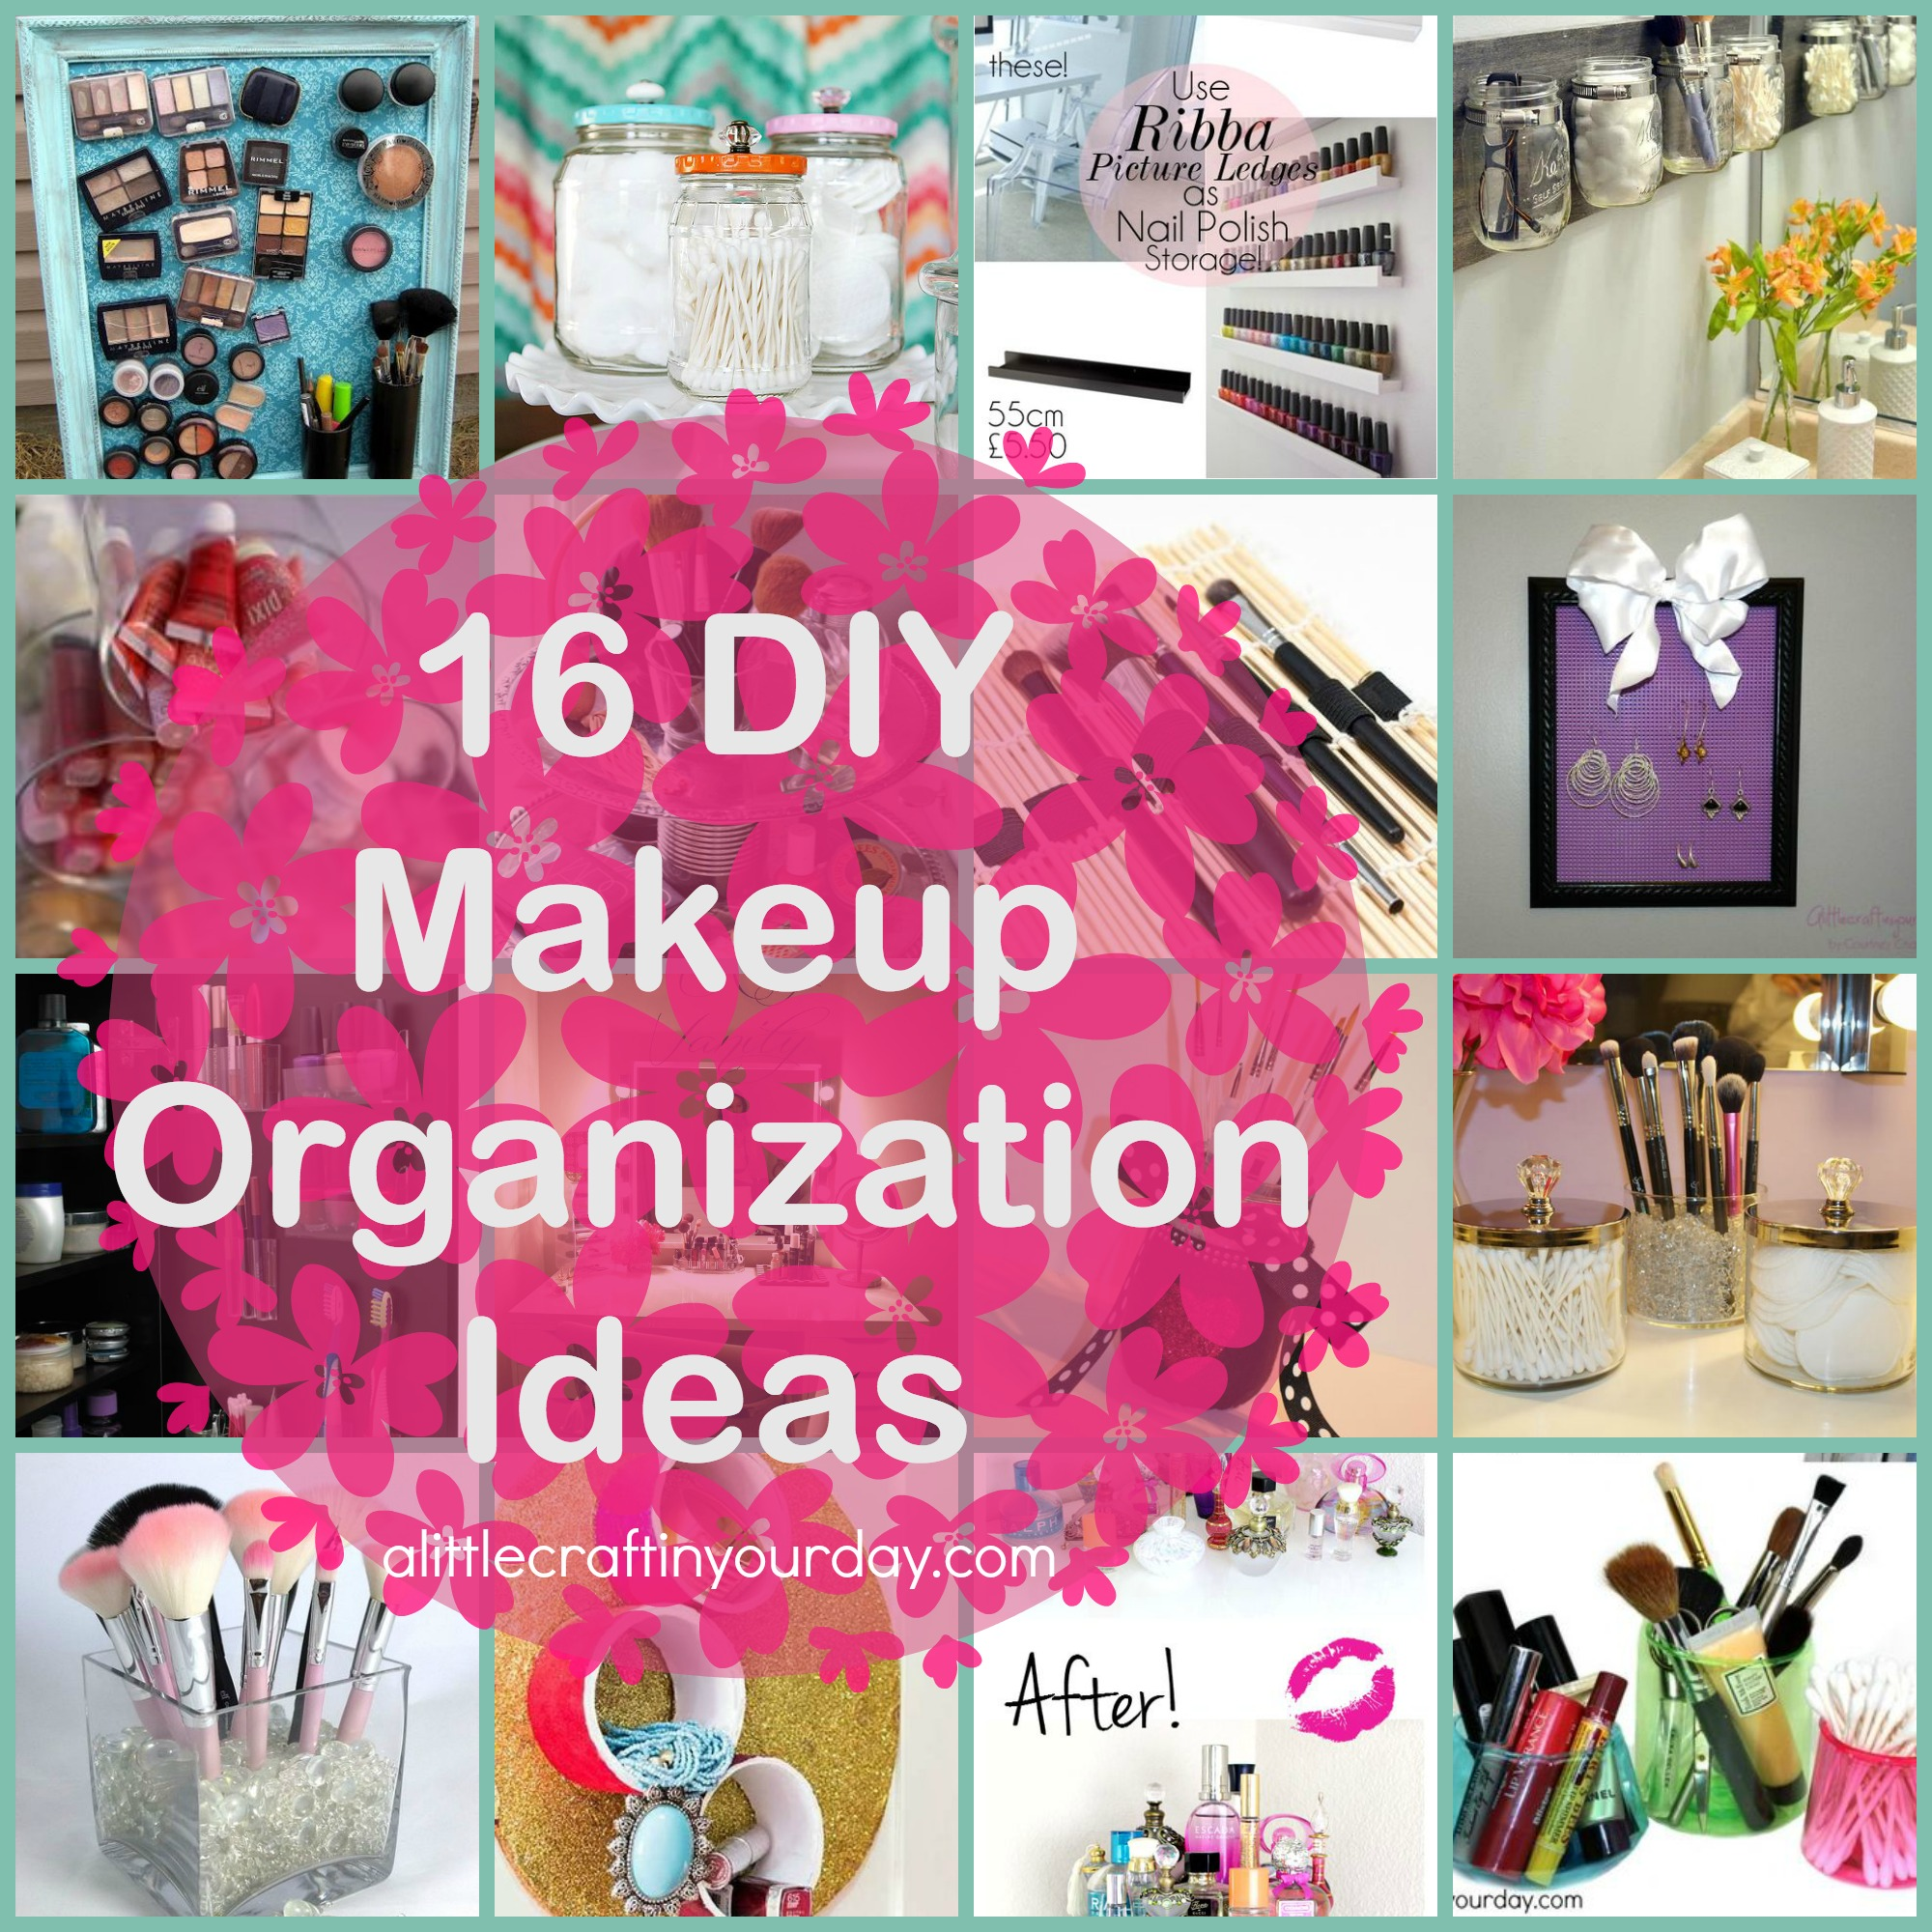 3 31 16 Diy Makeup Organization Ideas